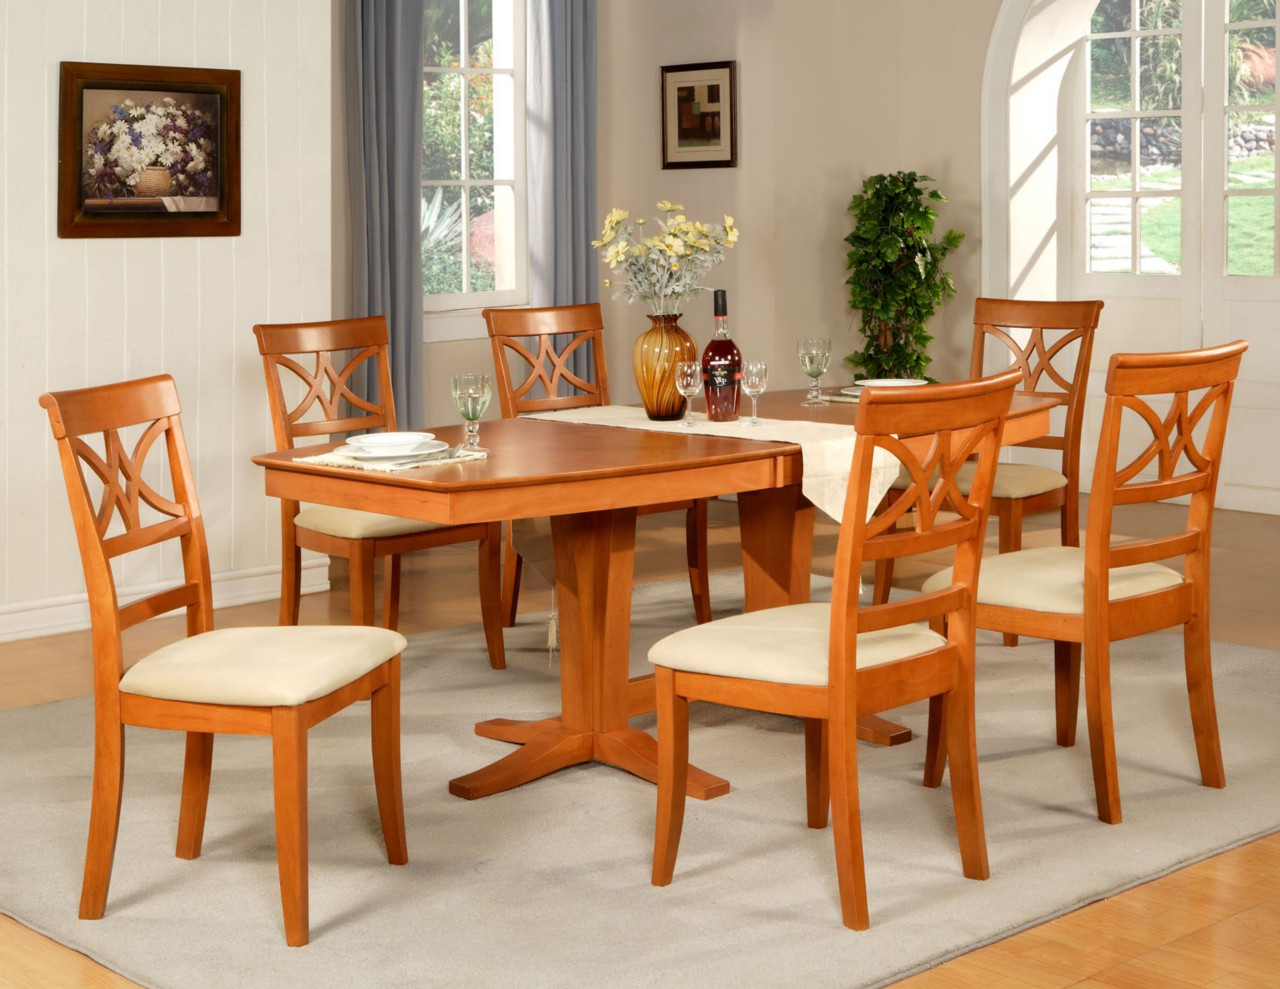 Details About 7PC DINING ROOM SET TABLE AND 6 WOOD SEAT CHAIRS IN